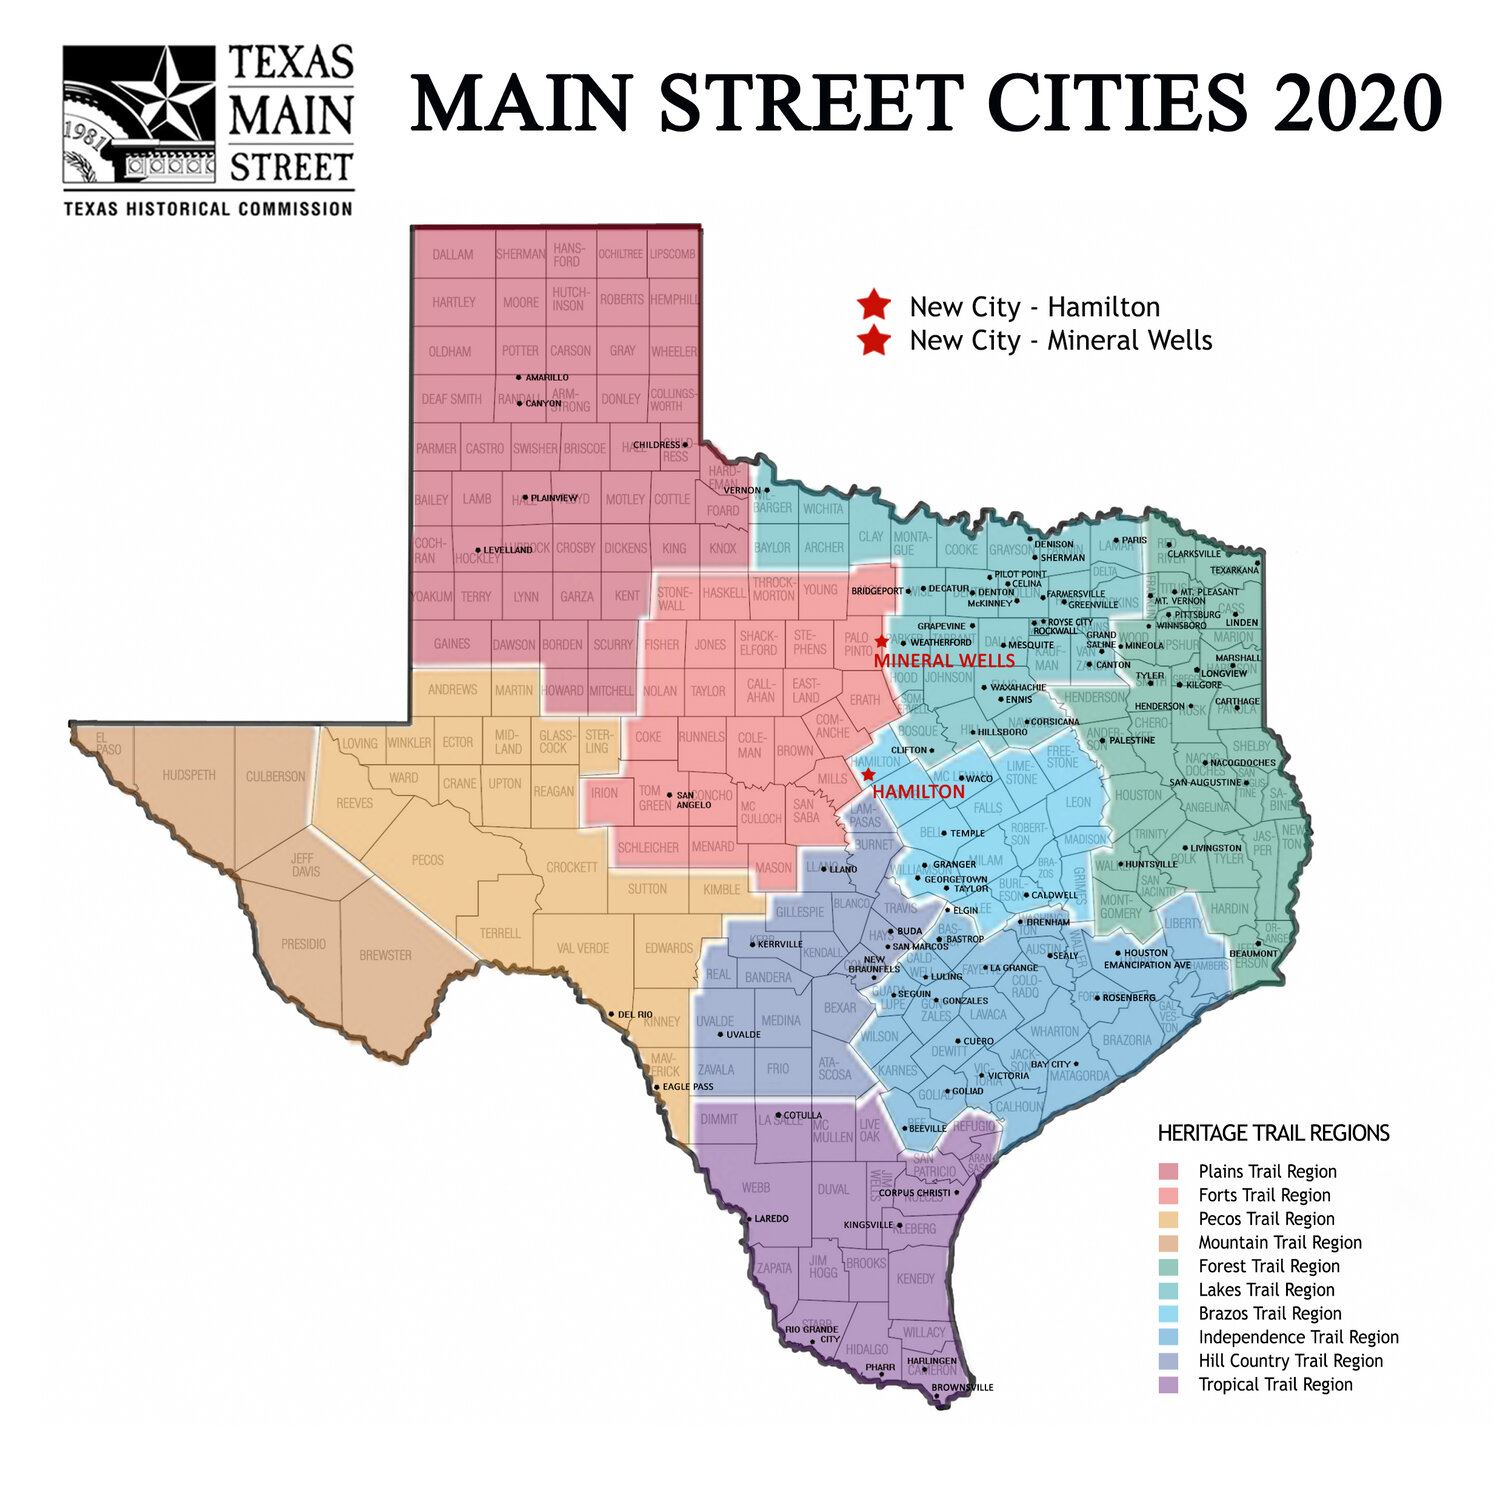 Texas Main Street Map 2020